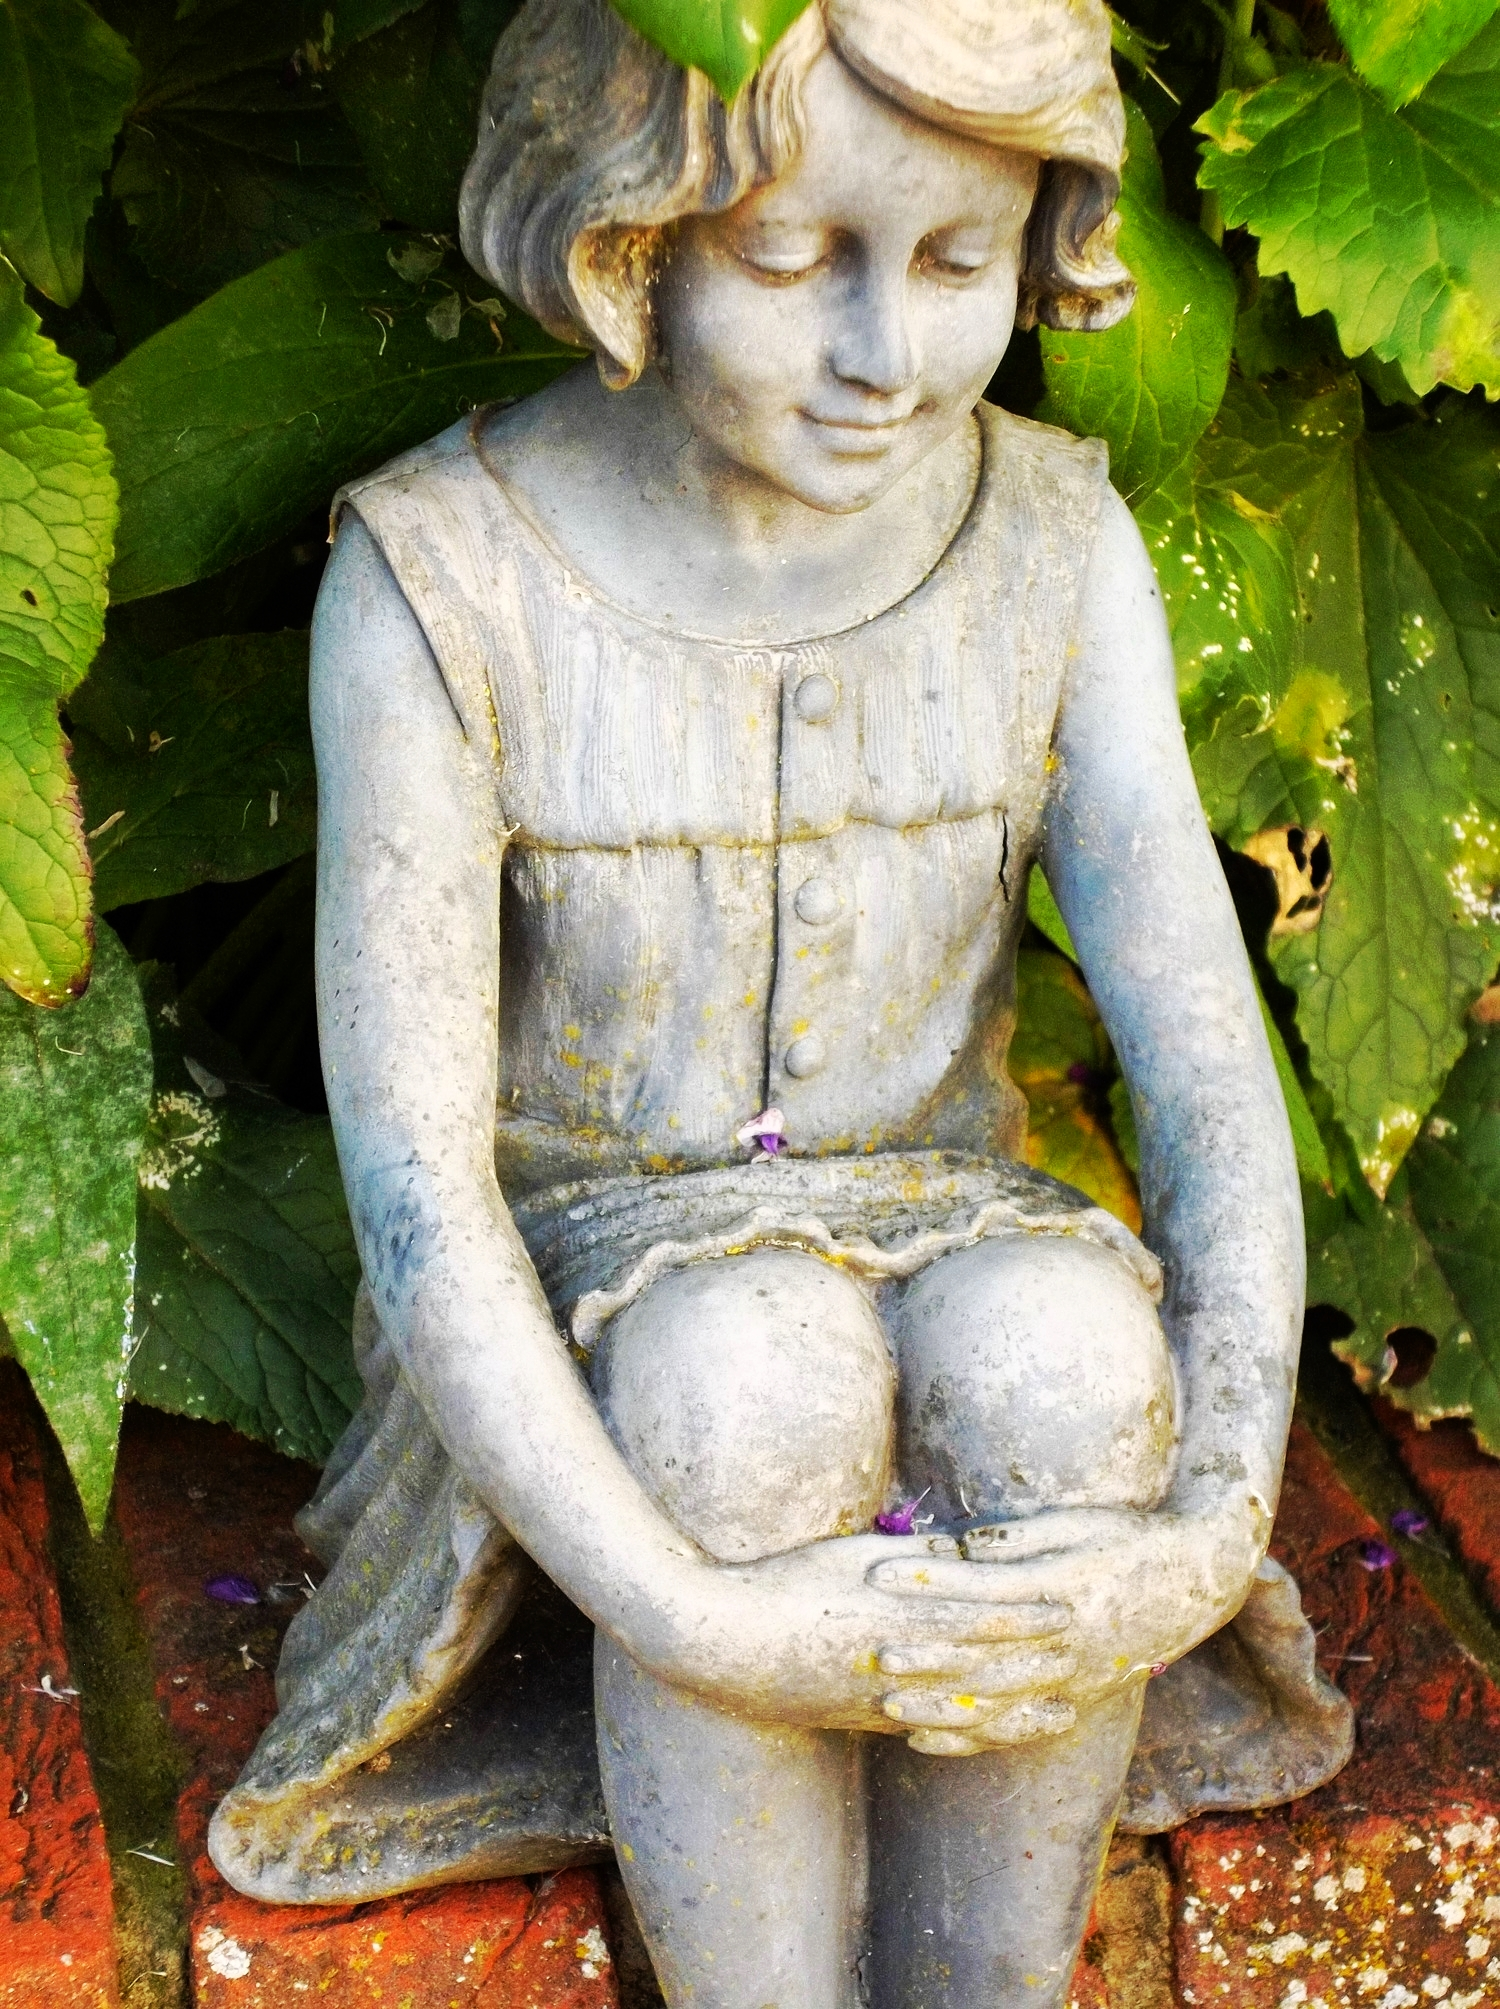 Small statue in Carol's Garden: I love how peaceful she is and the petals resting on her